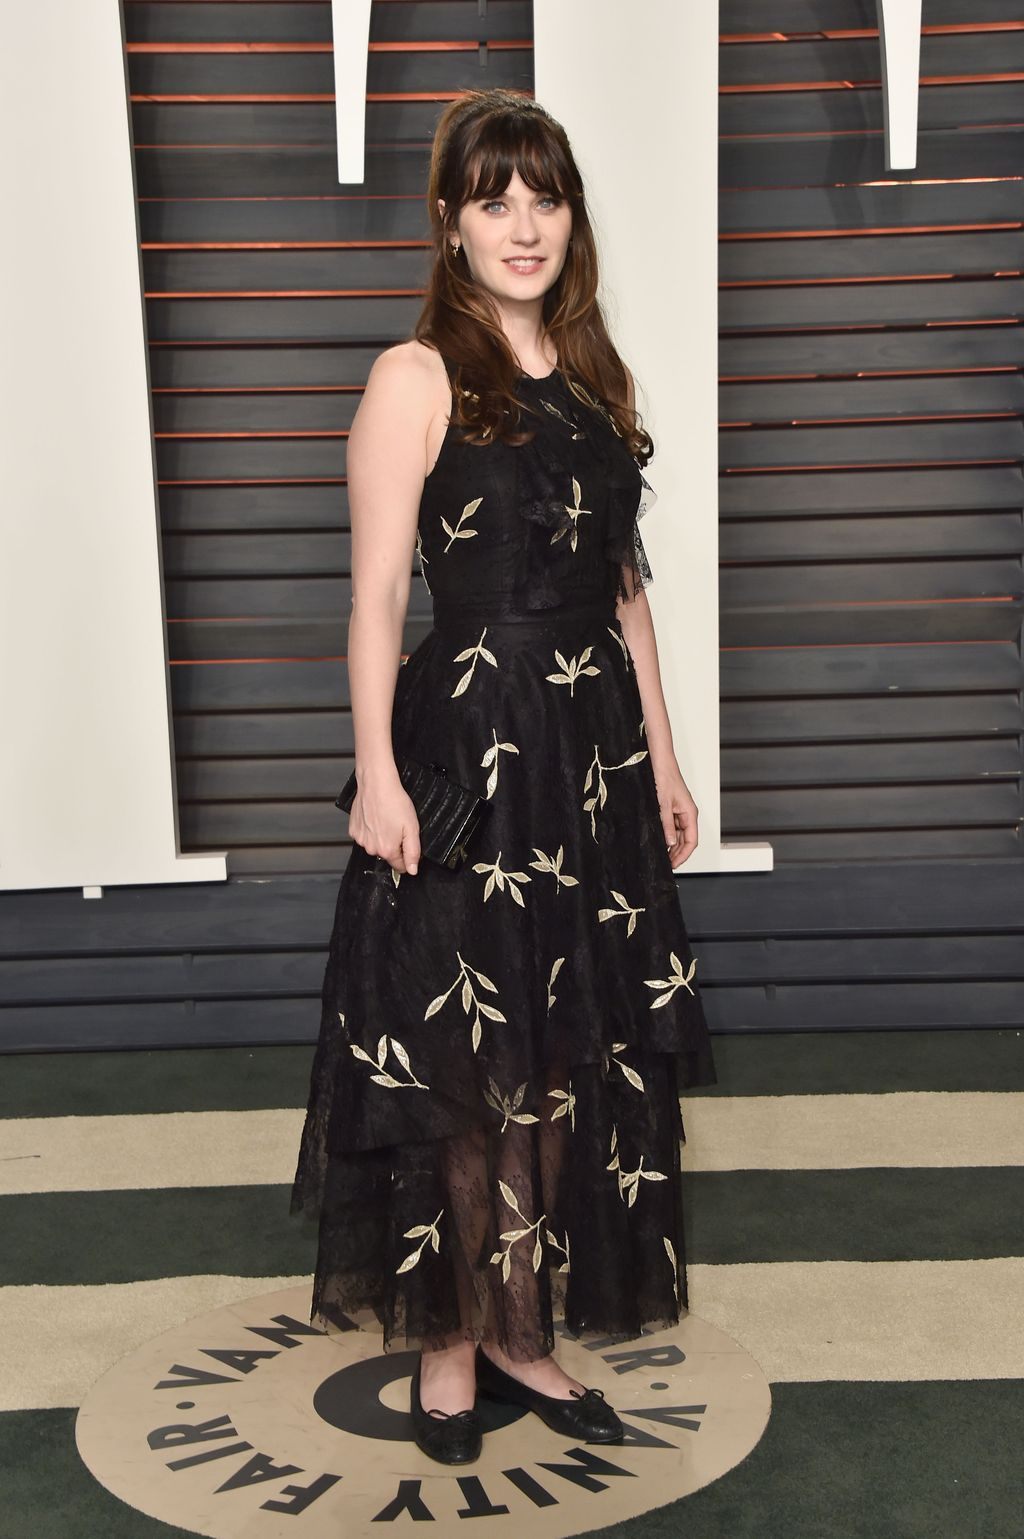 BEVERLY HILLS, CA - FEBRUARY 28:  Actress Zooey Deschanel attends the 2016 Vanity Fair Oscar Party Hosted By Graydon Carter at the Wallis Annenberg Center for the Performing Arts on February 28, 2016 in Beverly Hills, California.  (Photo by Pascal Le Segretain/Getty Images)